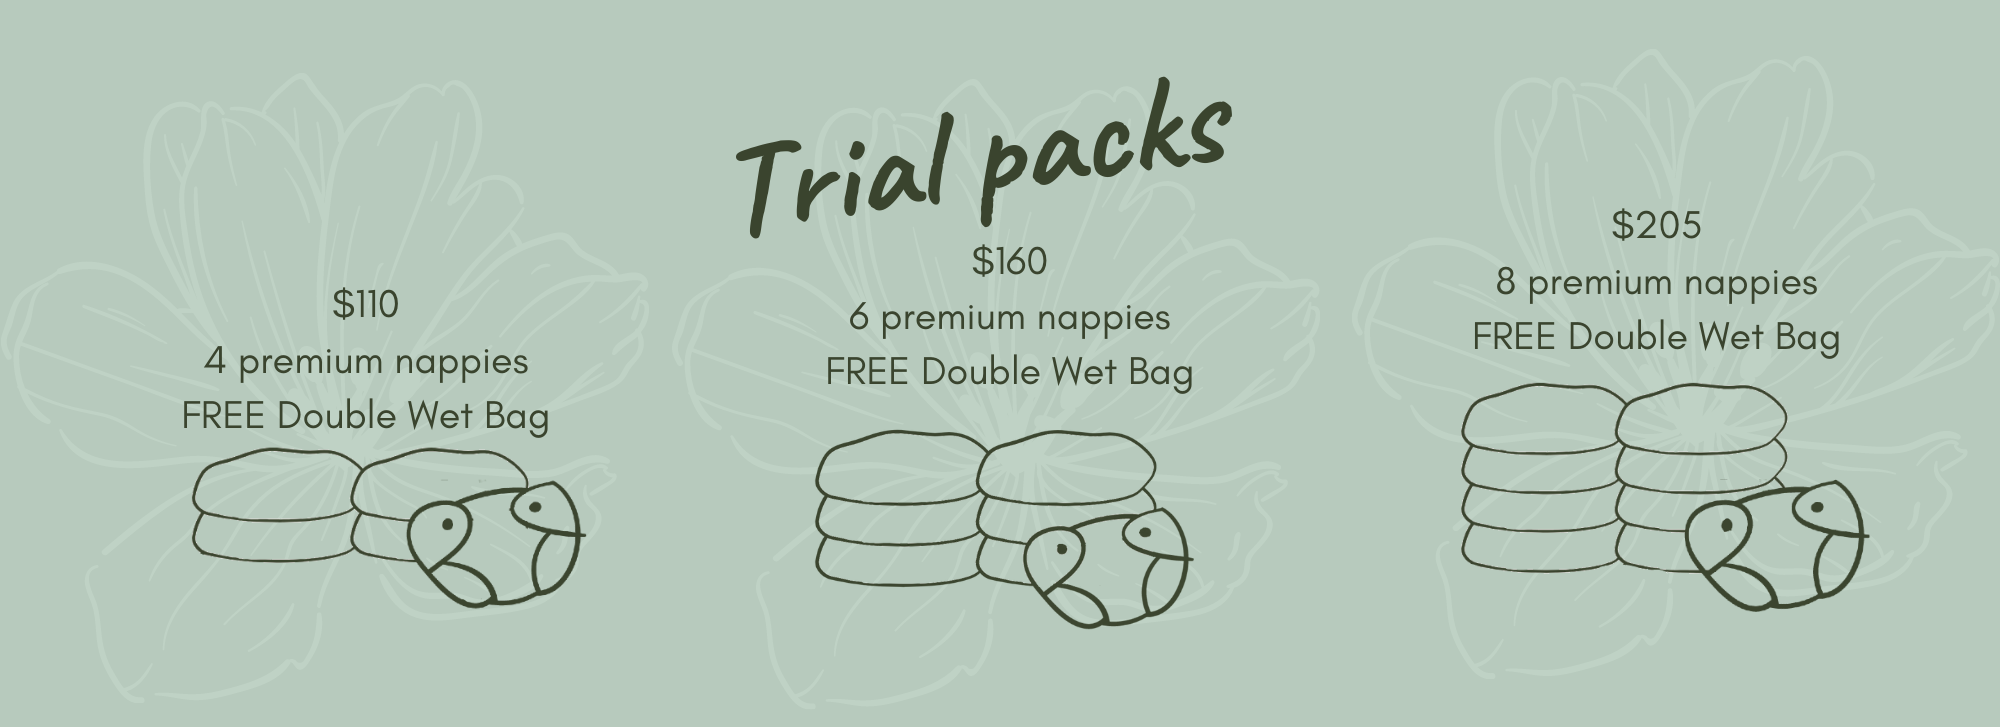 trial pack banner.png